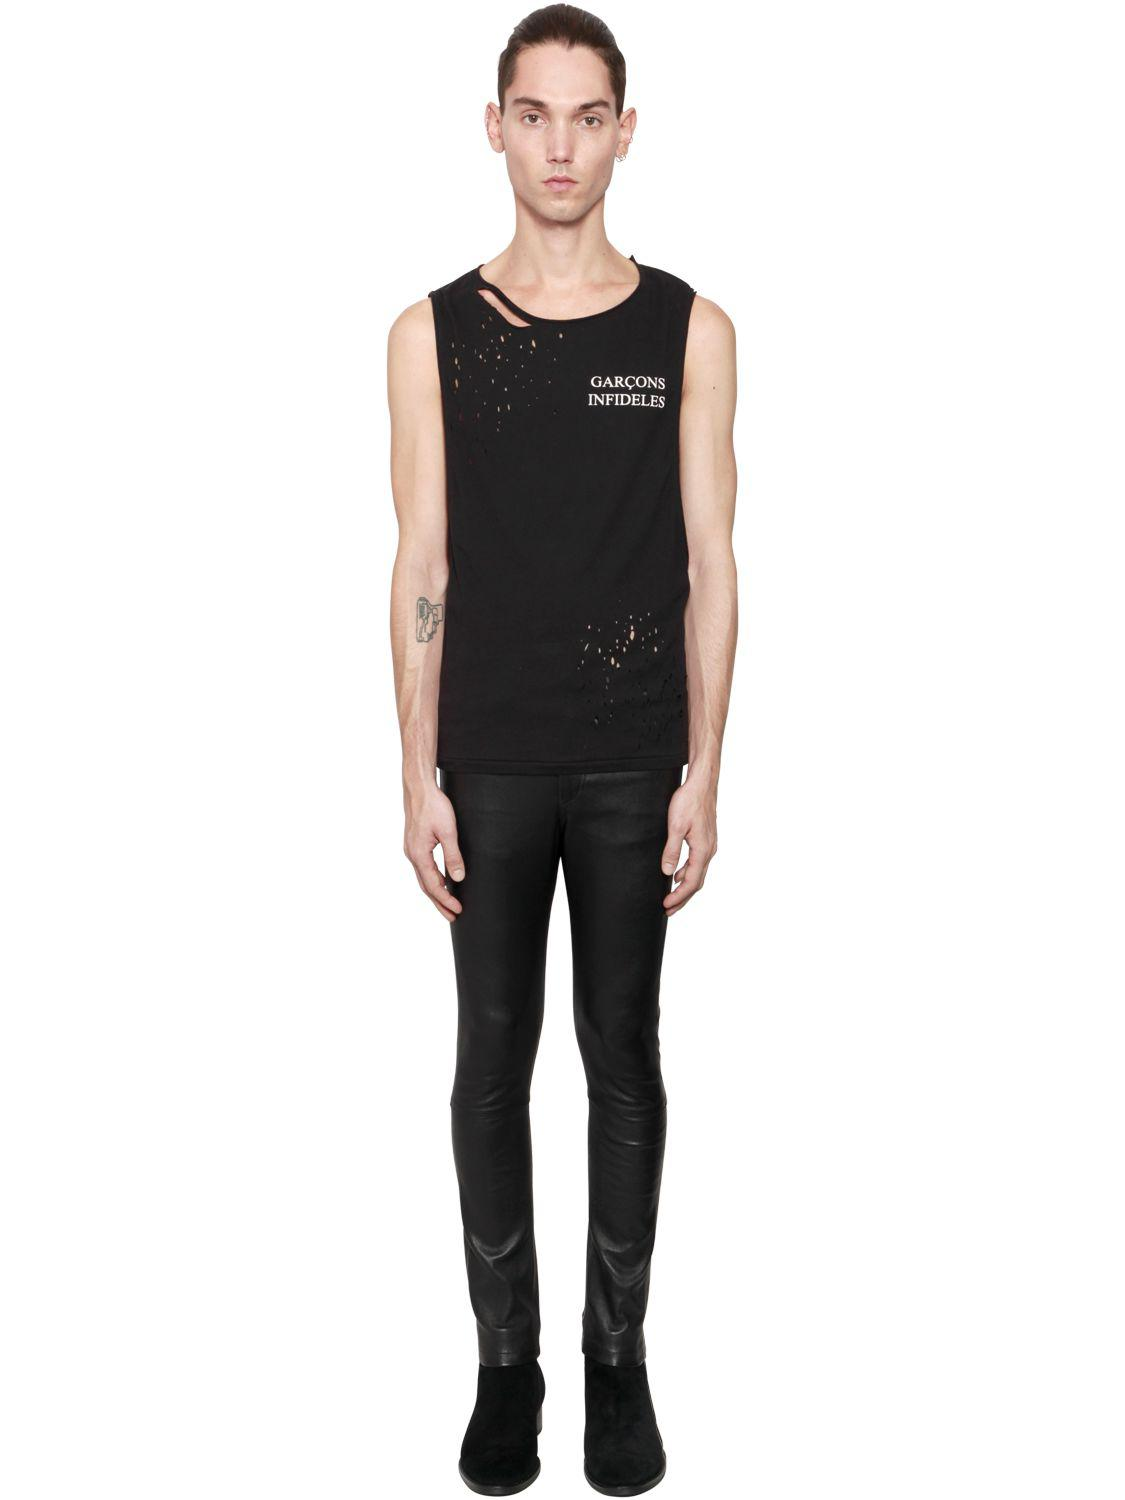 Garçons Infideles Thank You Ripped Jersey Tank Top in Black for Men